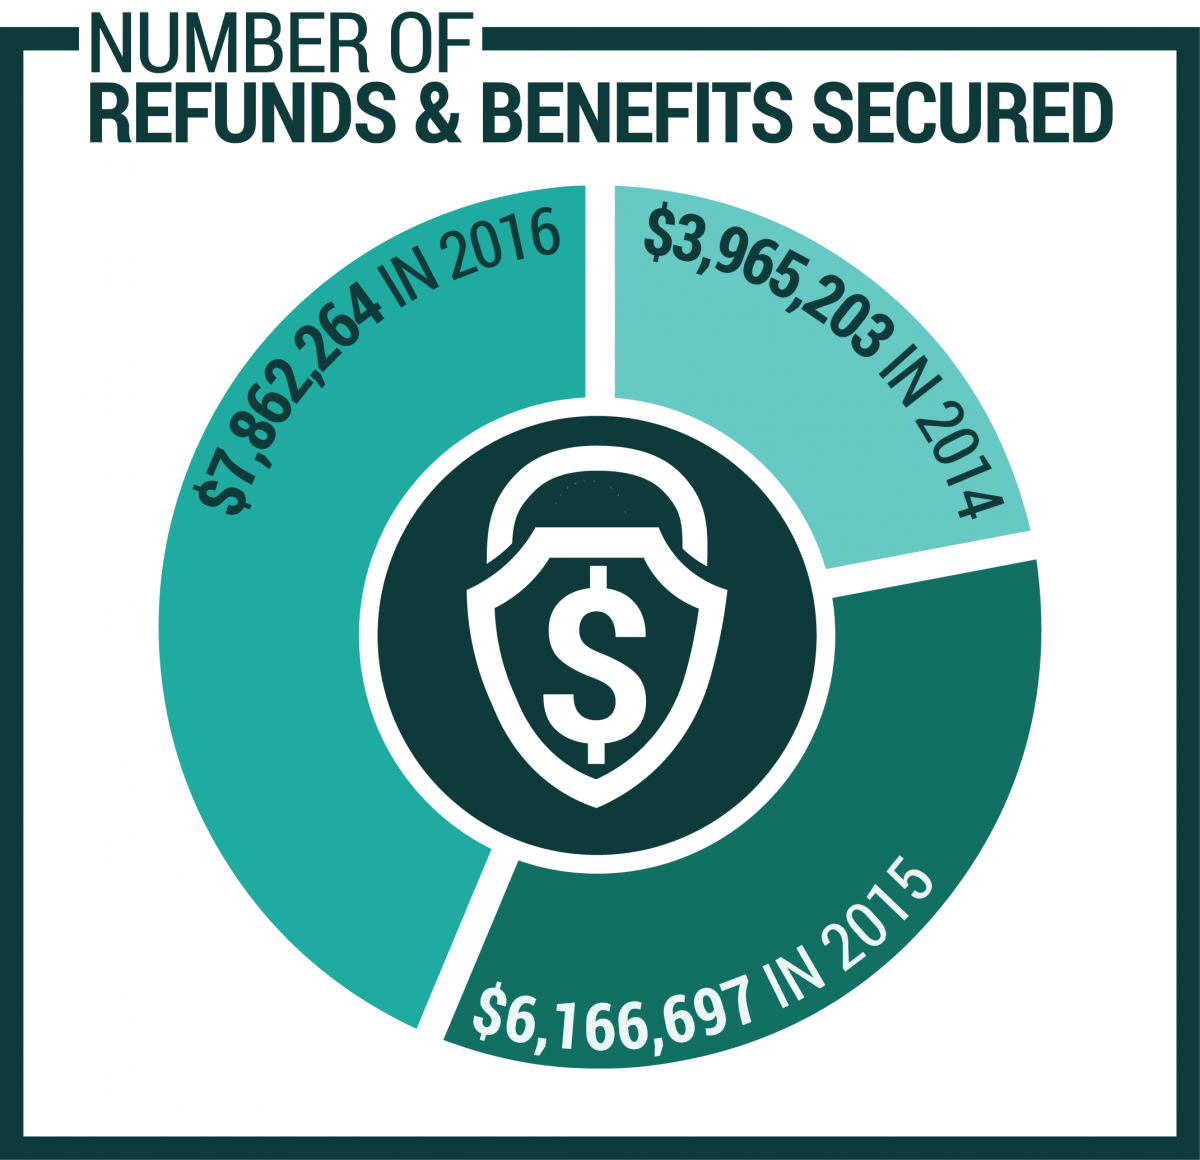 Number of Refunds and Benefits Secured: $3965203 in 2014, $6166697 in 2015, and $7862263 in 2016